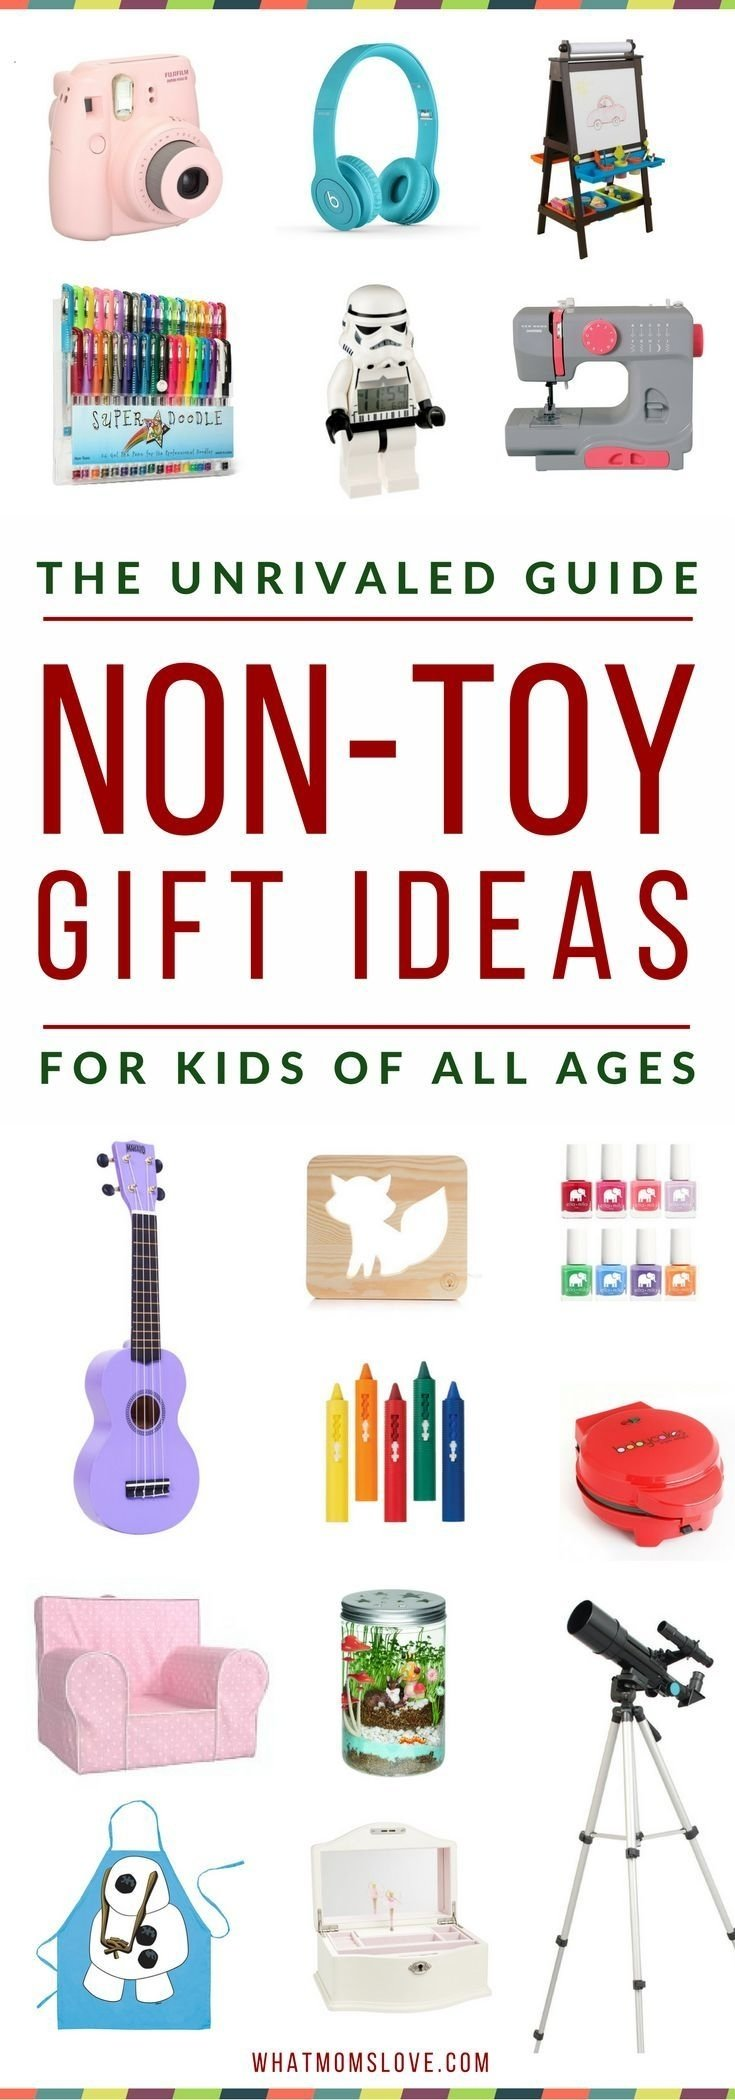 10 Pretty Gift Ideas For 10 Year Olds 182 best best gifts for 10 year old girls images on pinterest 1 2021